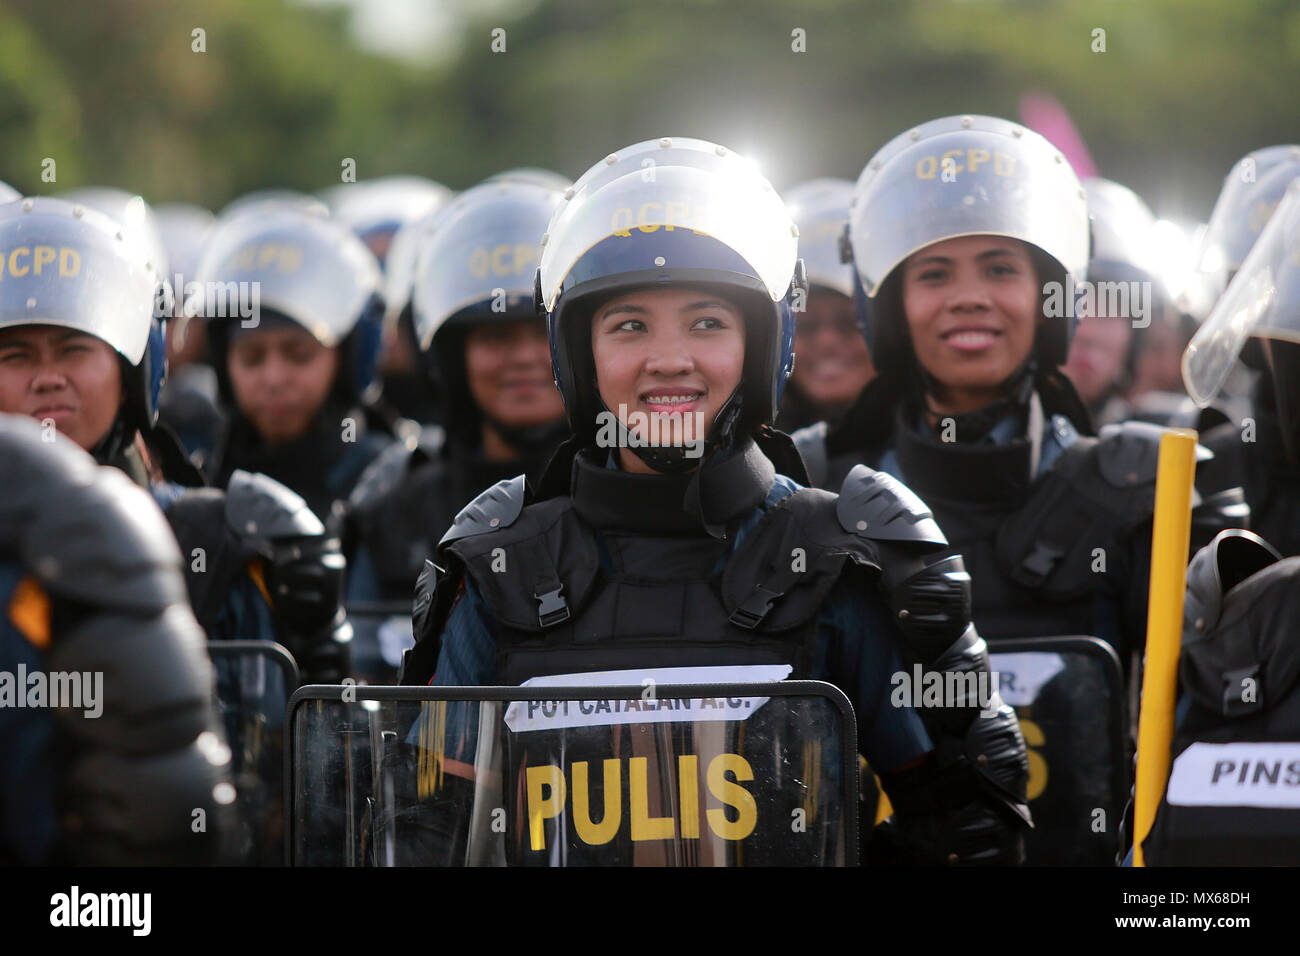 Manila, Philippines. 3rd June, 2018. A policewoman smiles during the annual Philippine National Police Civil Disturbance Management (PNP-CDM) competition in Manila, the Philippines, June 3, 2018. Credit: Rouelle Umali/Xinhua/Alamy Live News - Stock Image